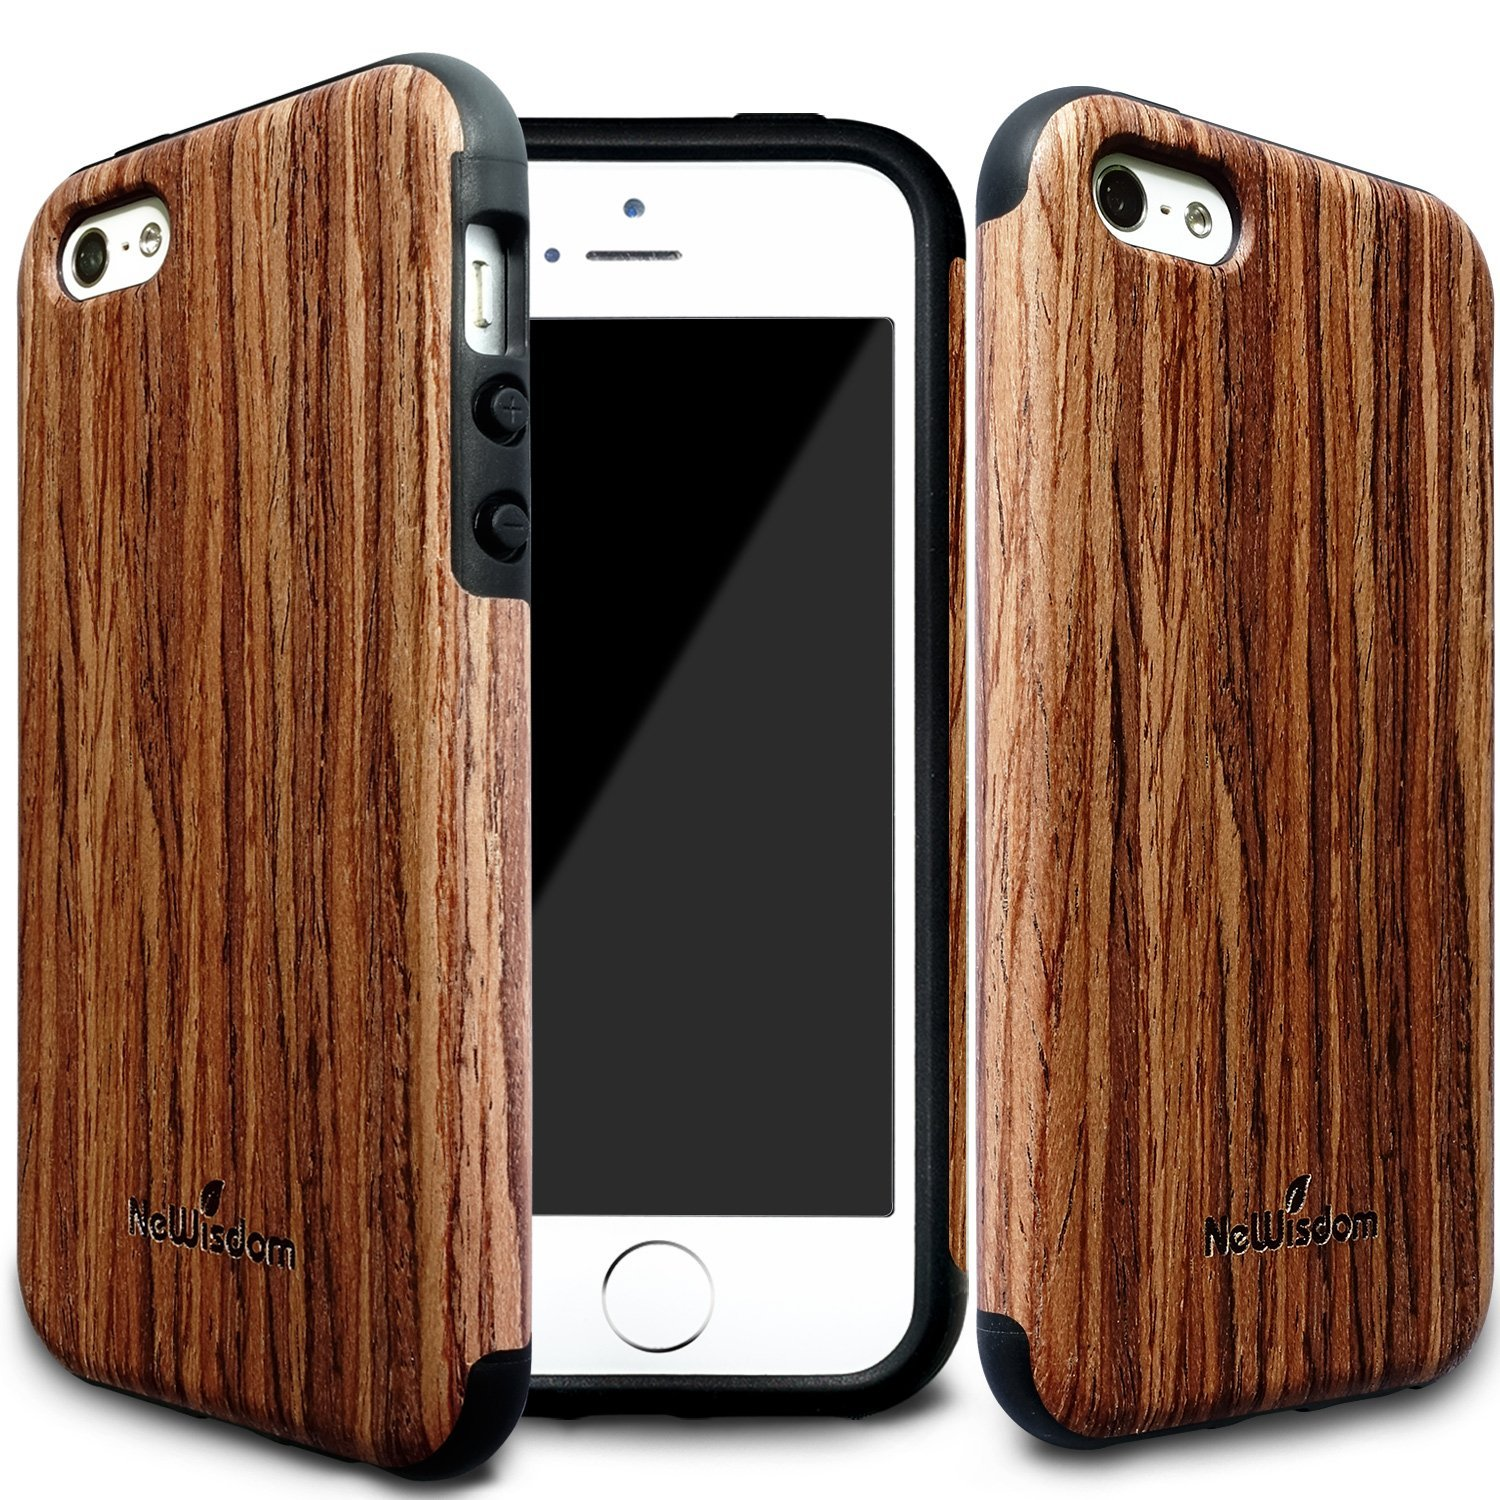 Cheap Iphone 3 Case Wood Find Iphone 3 Case Wood Deals On Line At